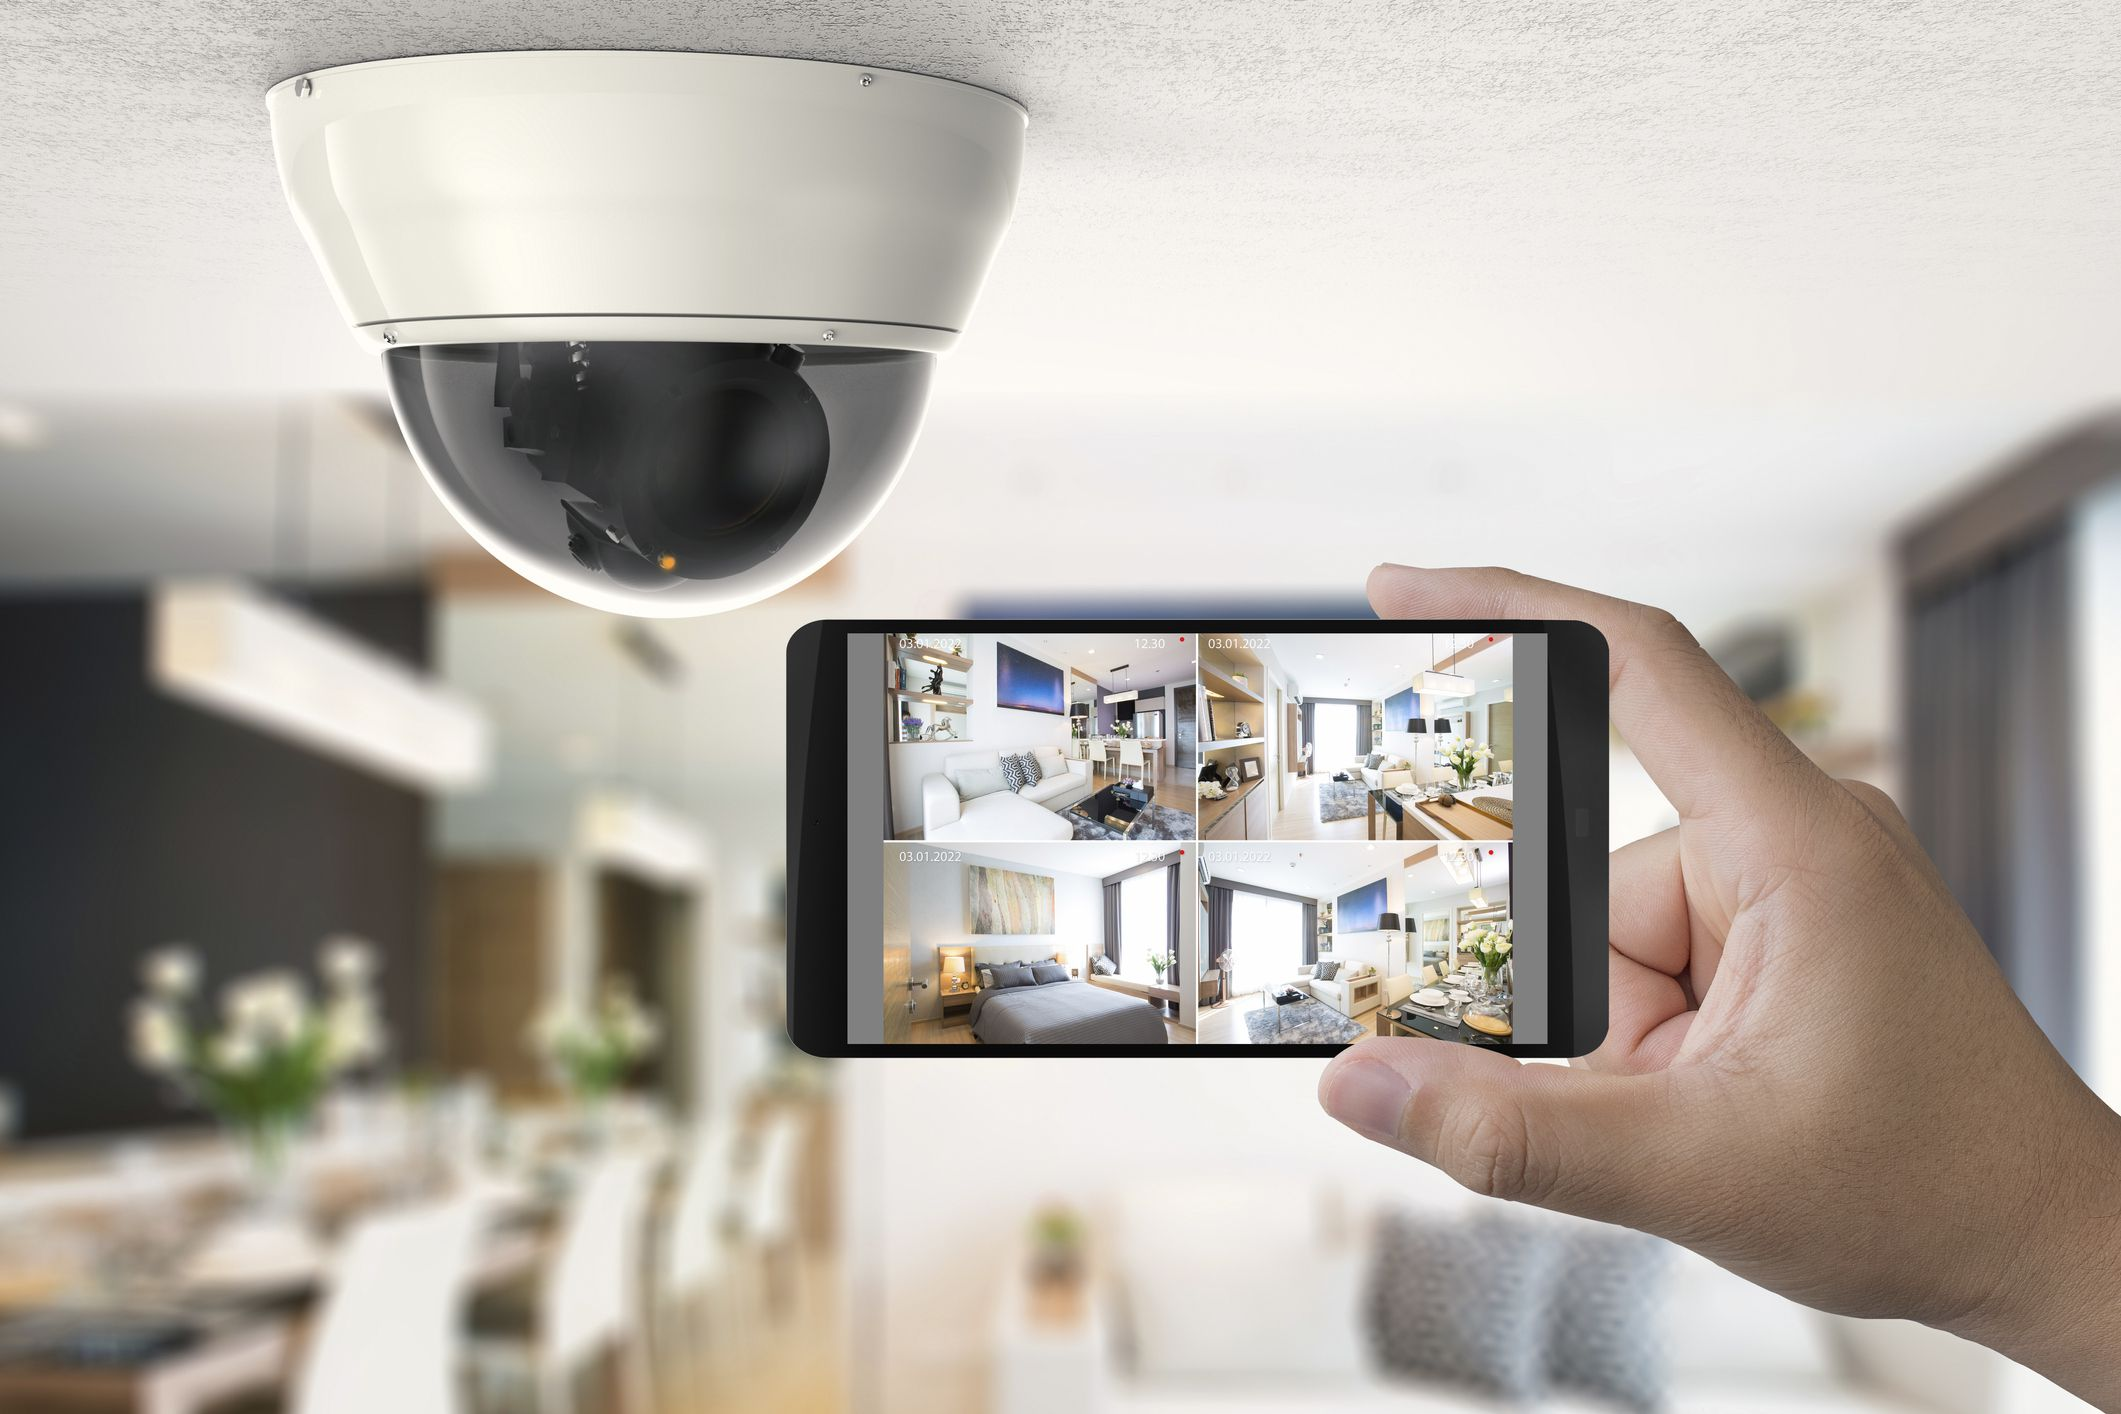 The 7 Best Hidden Cameras Of 2020